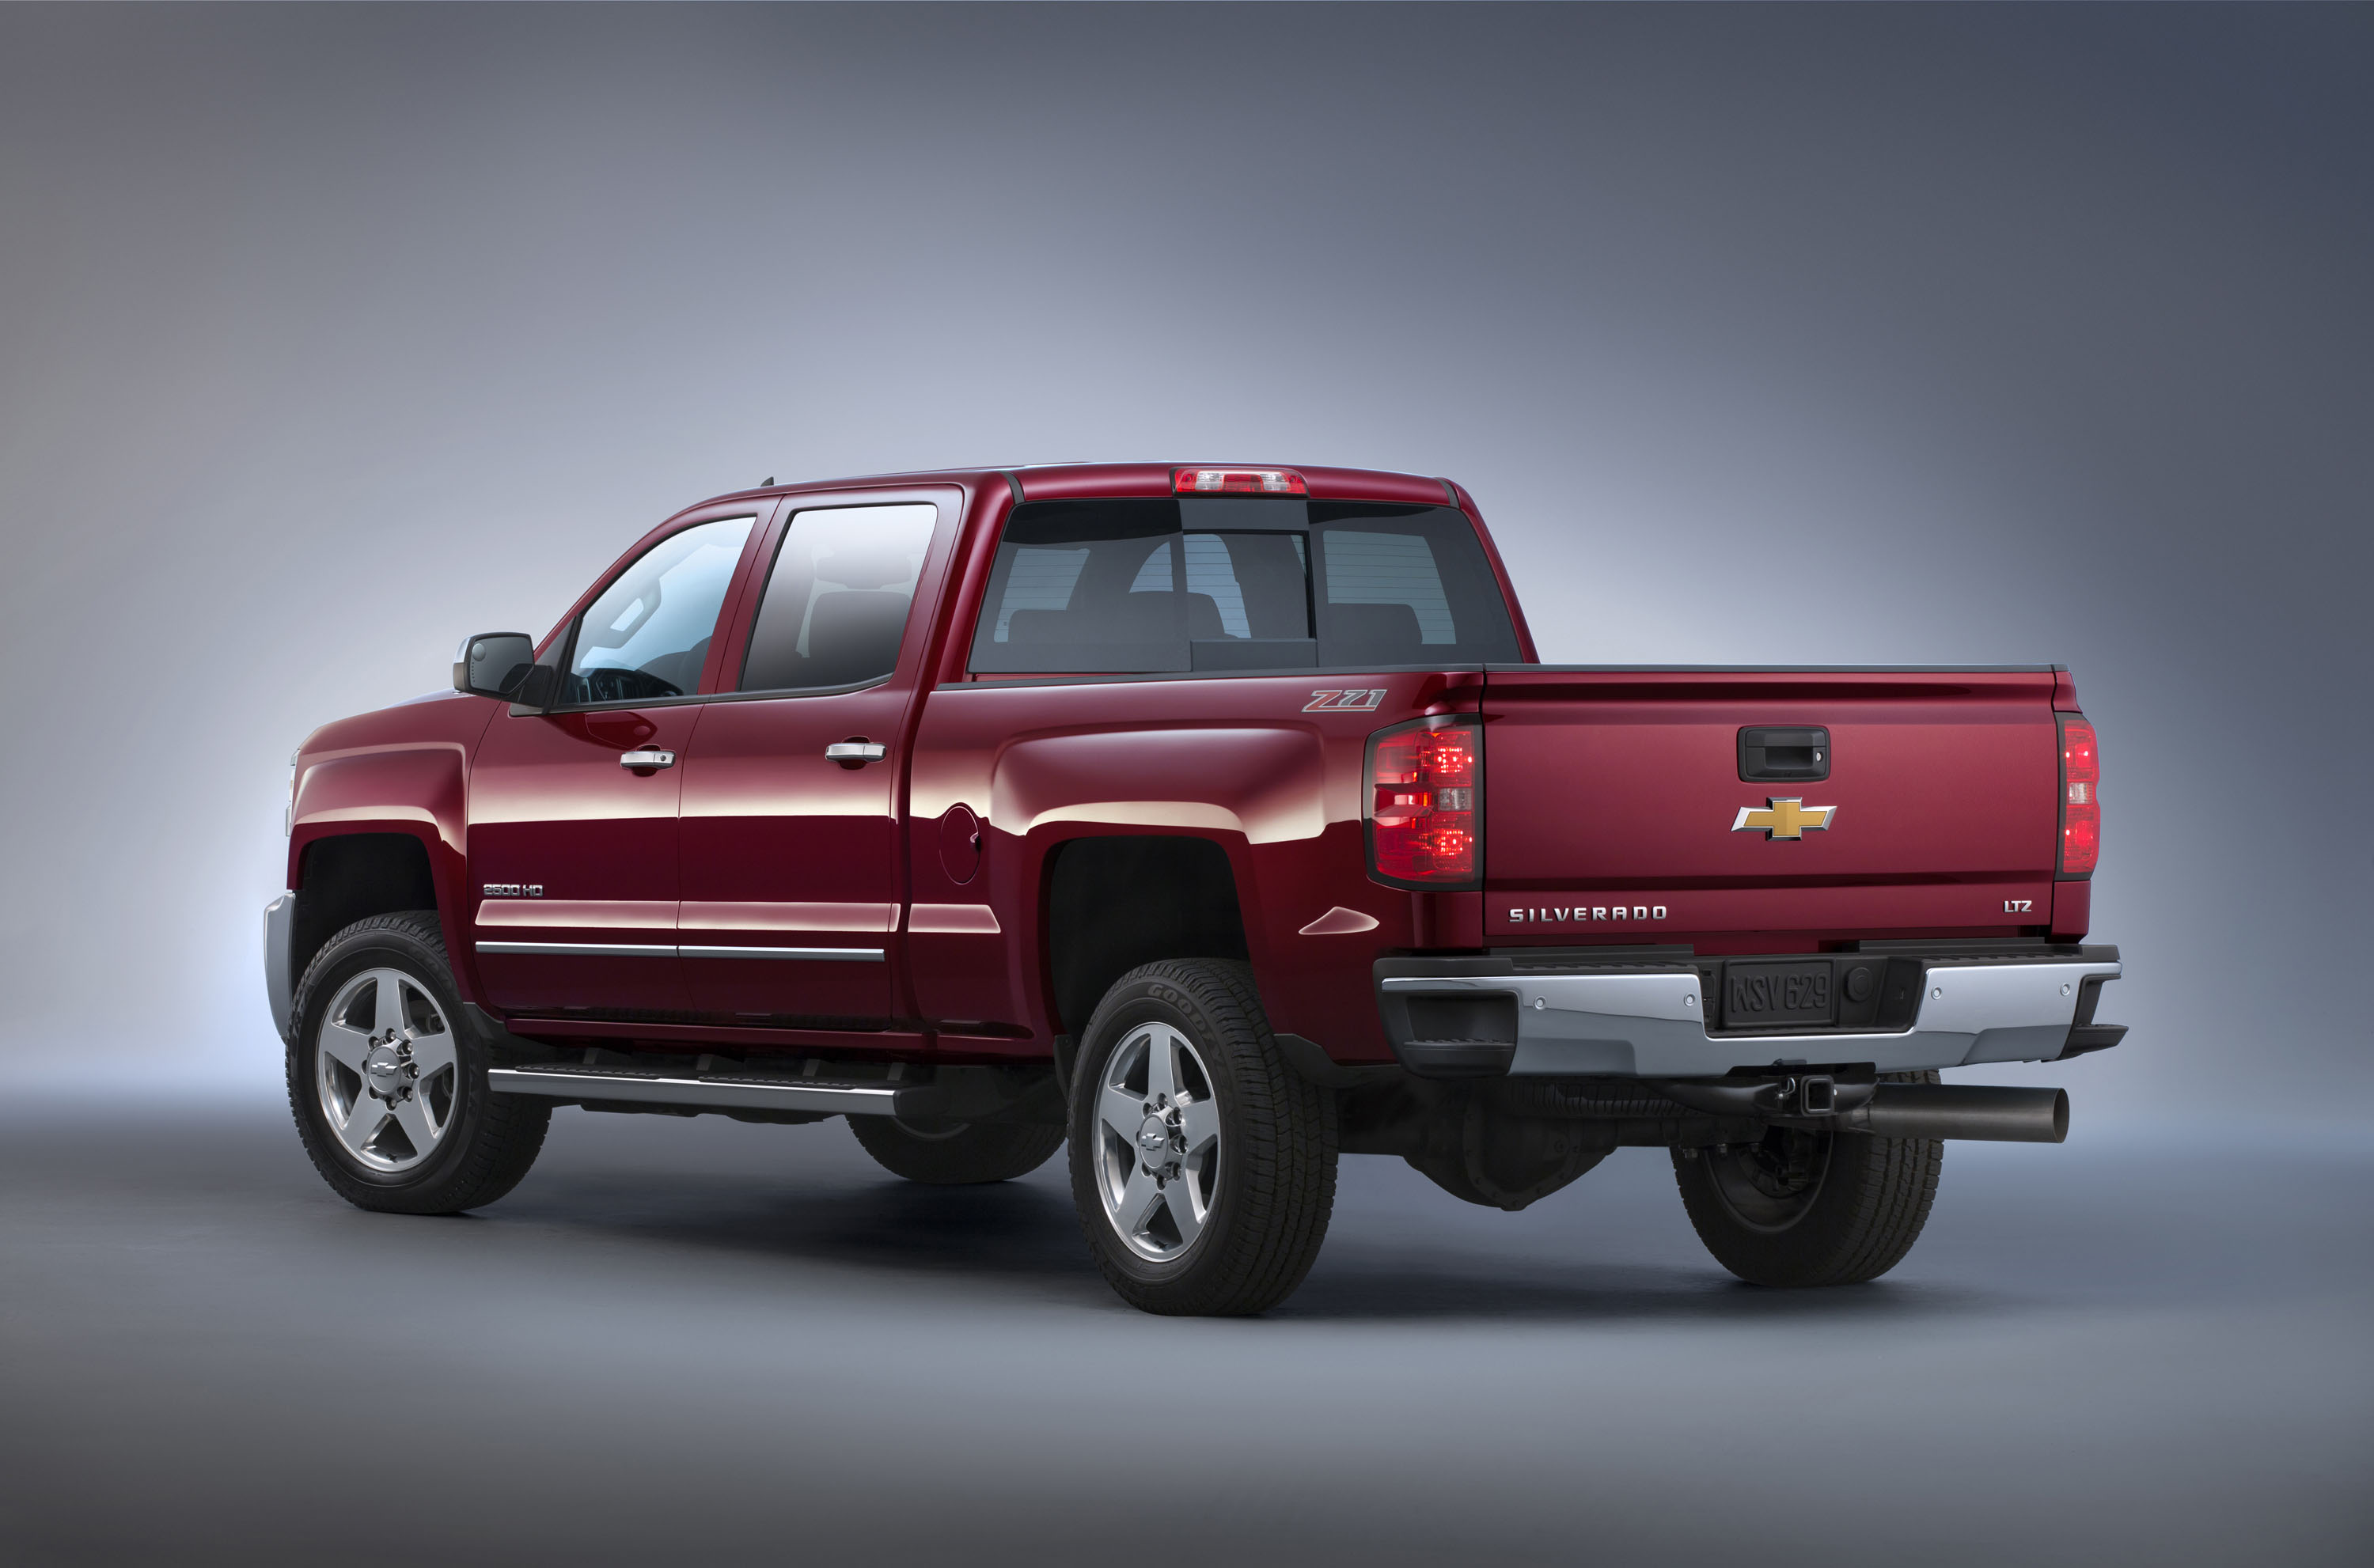 Chevy Gmc Ford Unveil New Trucks At State Fair Business Dallas 2009 Kia Rio Sedan Engine Diagram News